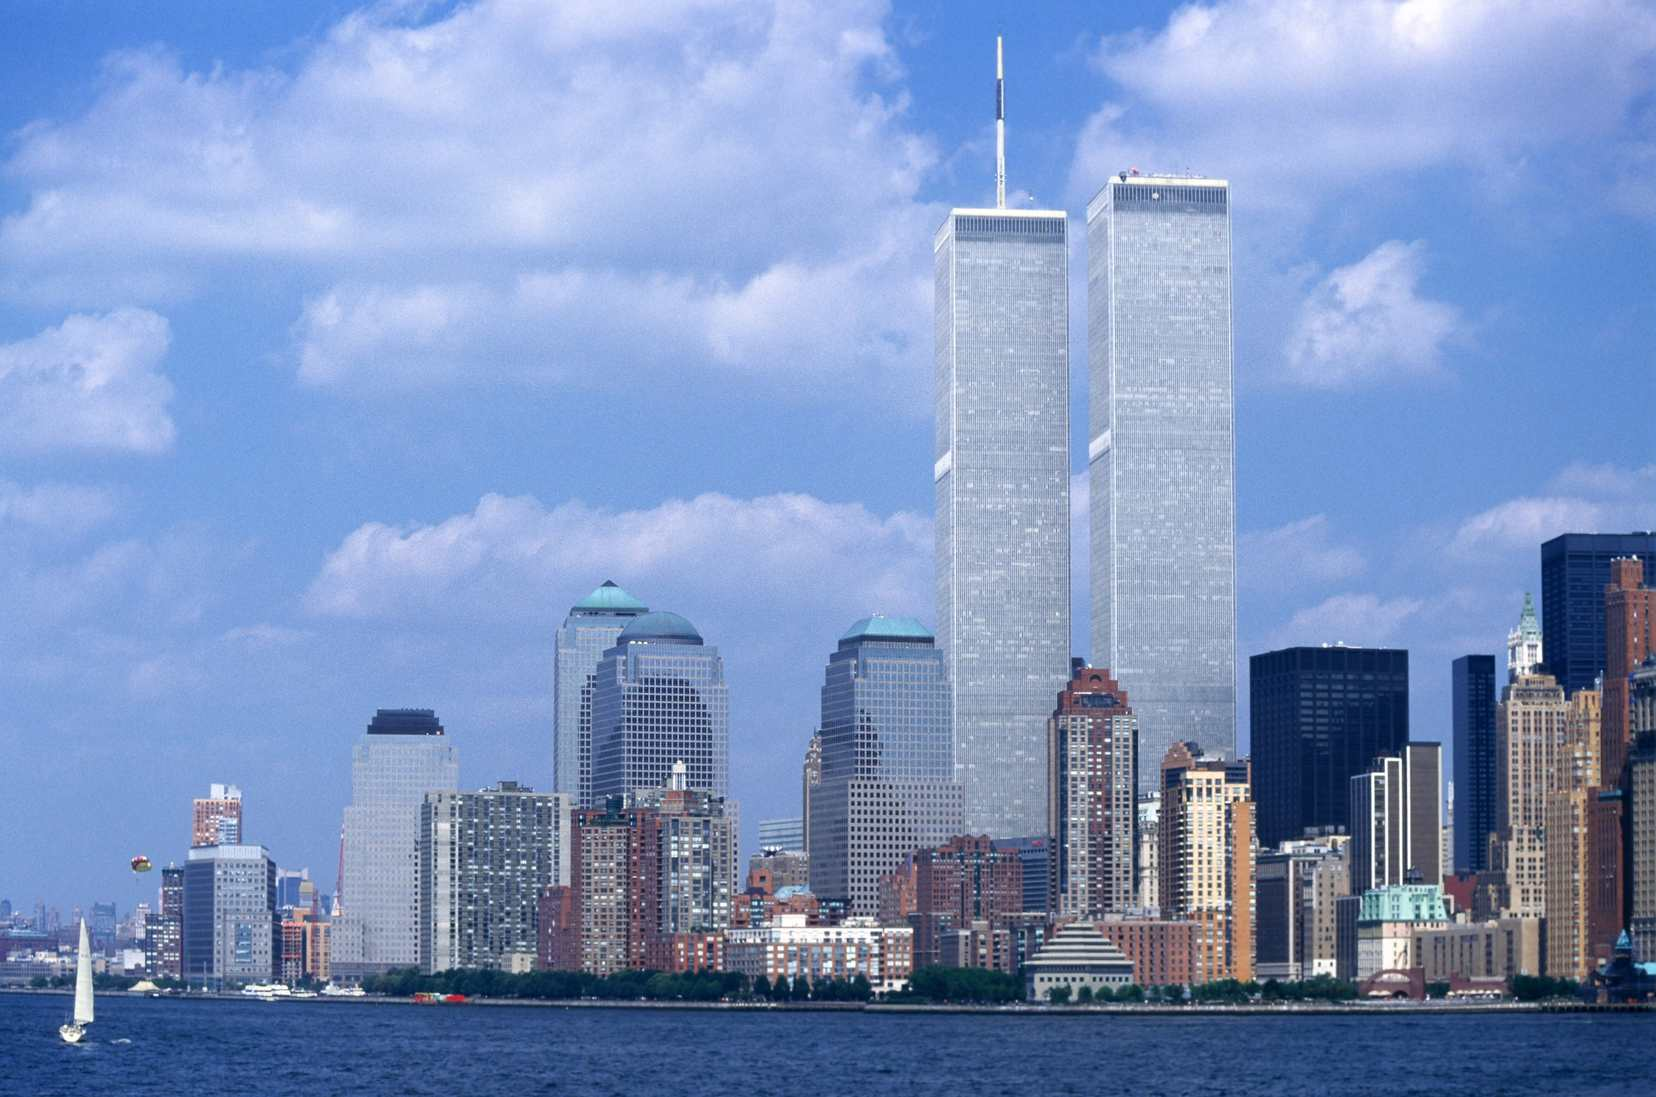 911-Twin-Towers-Before-155598273-crop-597125d1054ad90010bc56d1